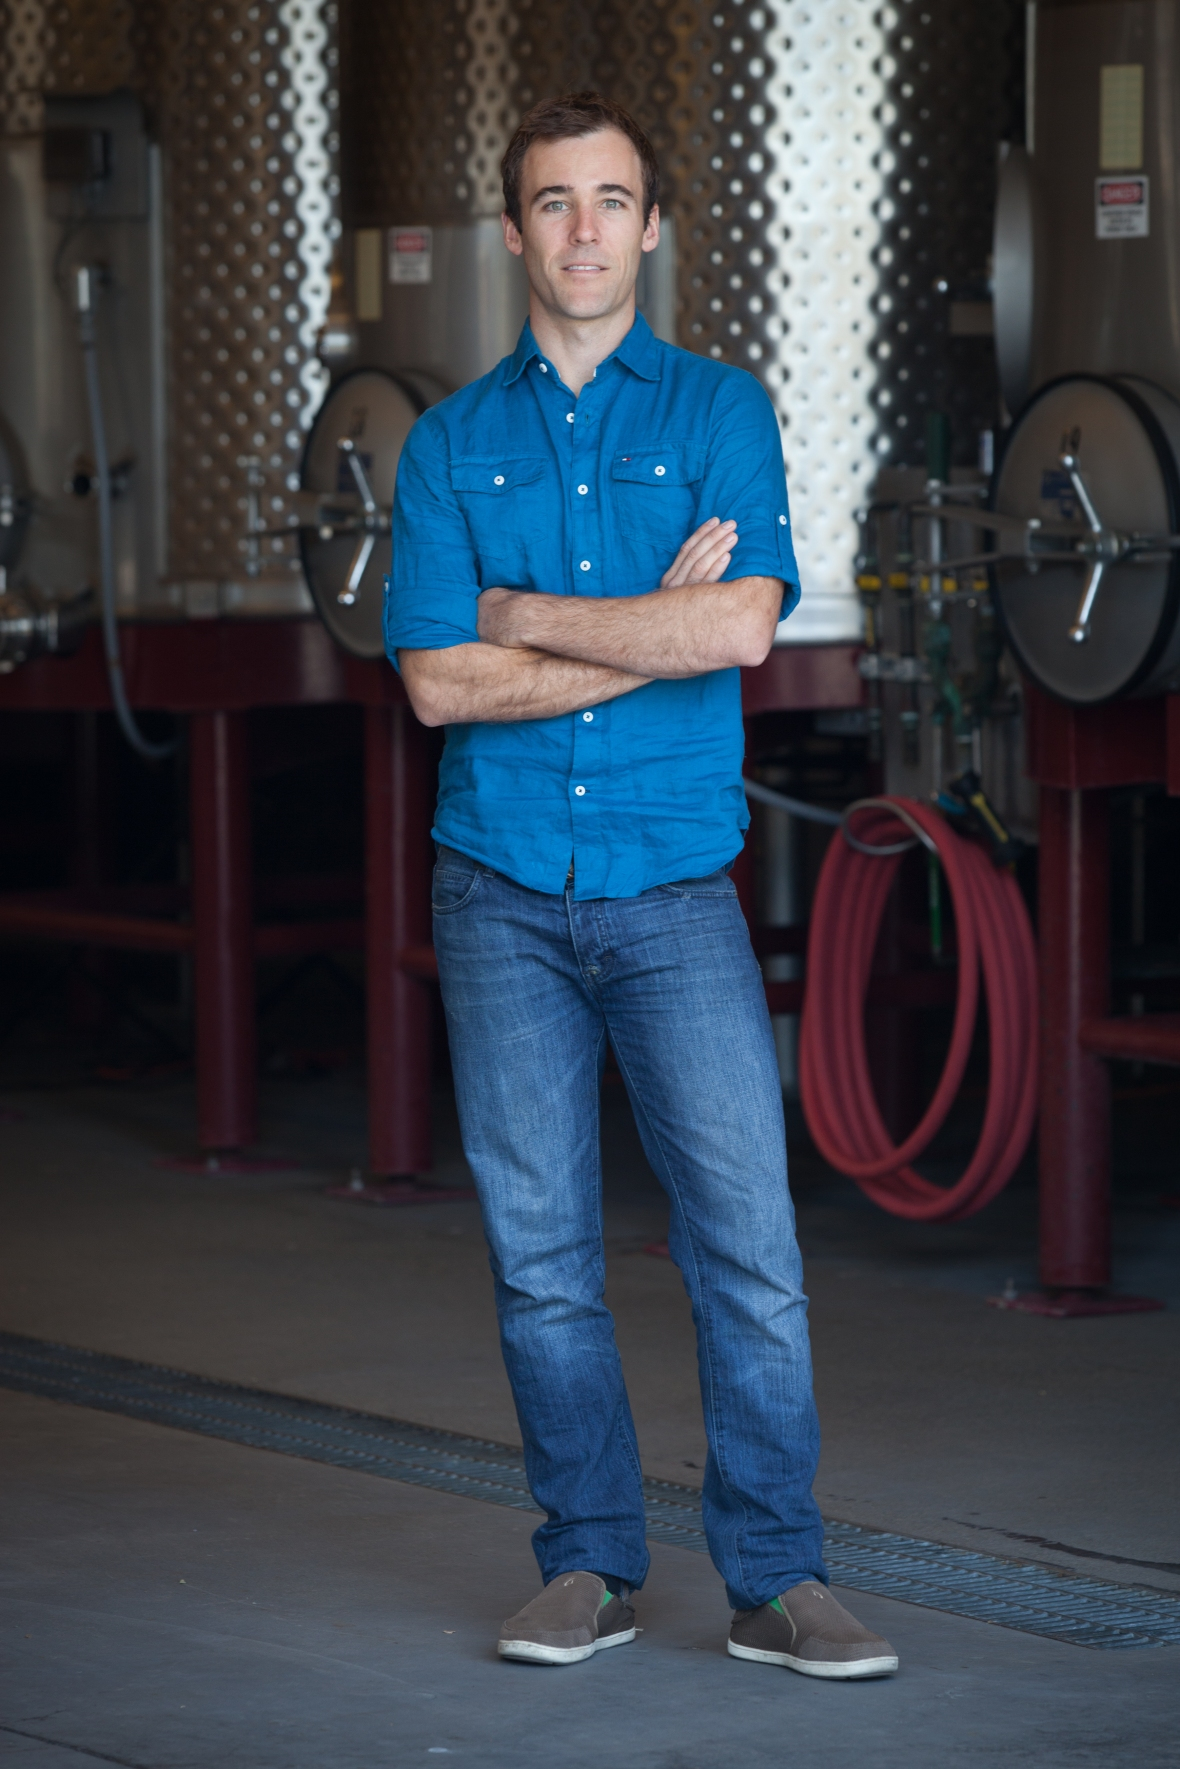 Napa Valley Winemaker, California Winemaker,